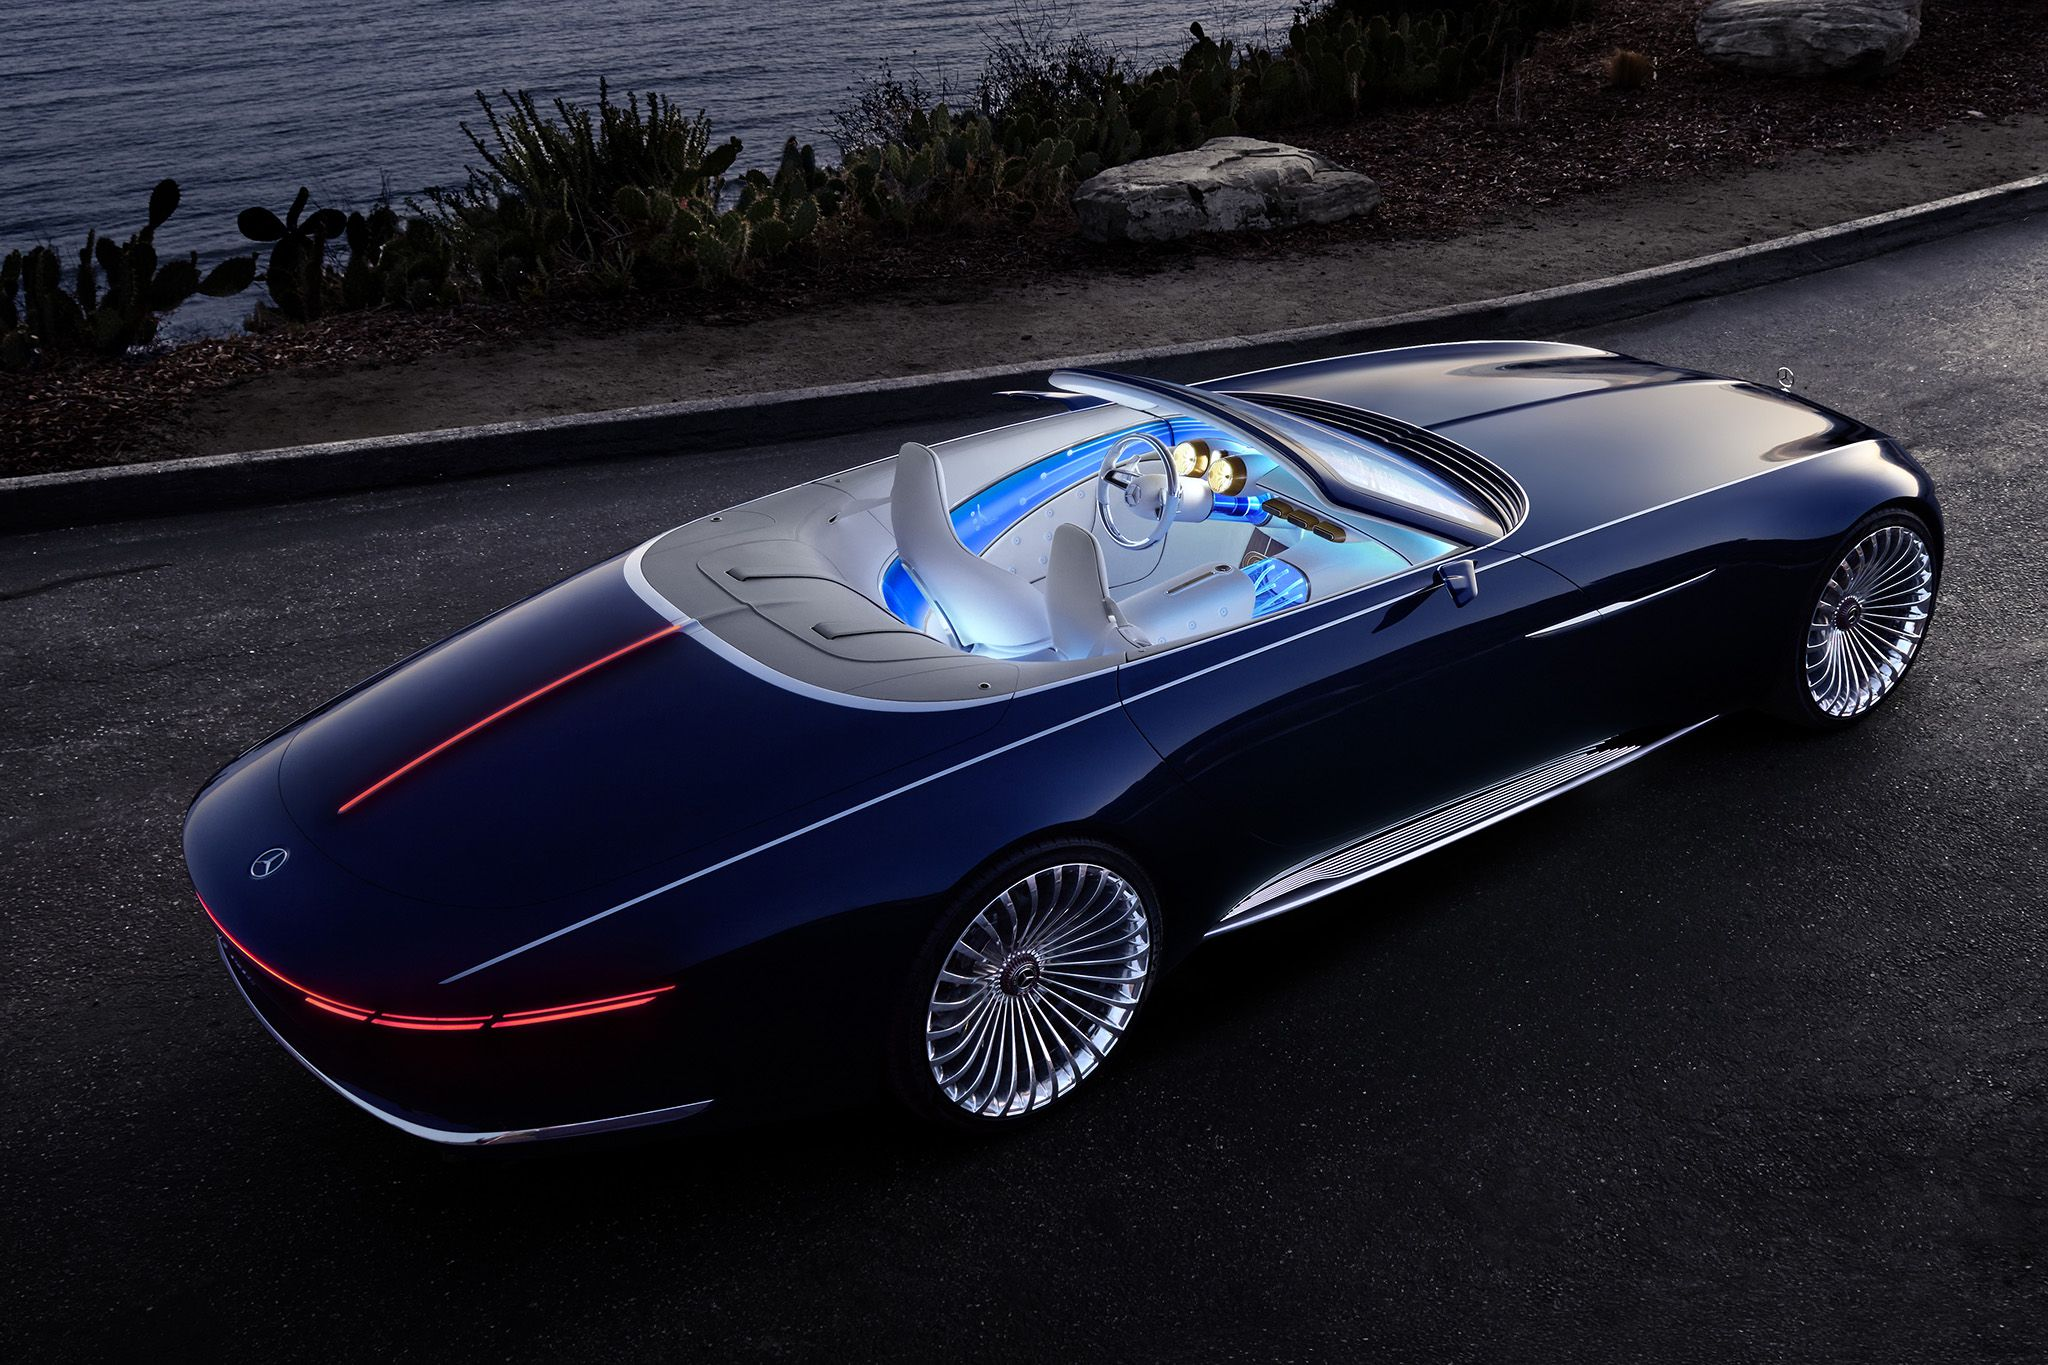 Mercedes Unwrapped A Stunning Electric Vehicle In Monterey California The Vision Mercedes Maybach 6 Cabriolet See It Here Mercedes Maybach Maybach Cabriolets